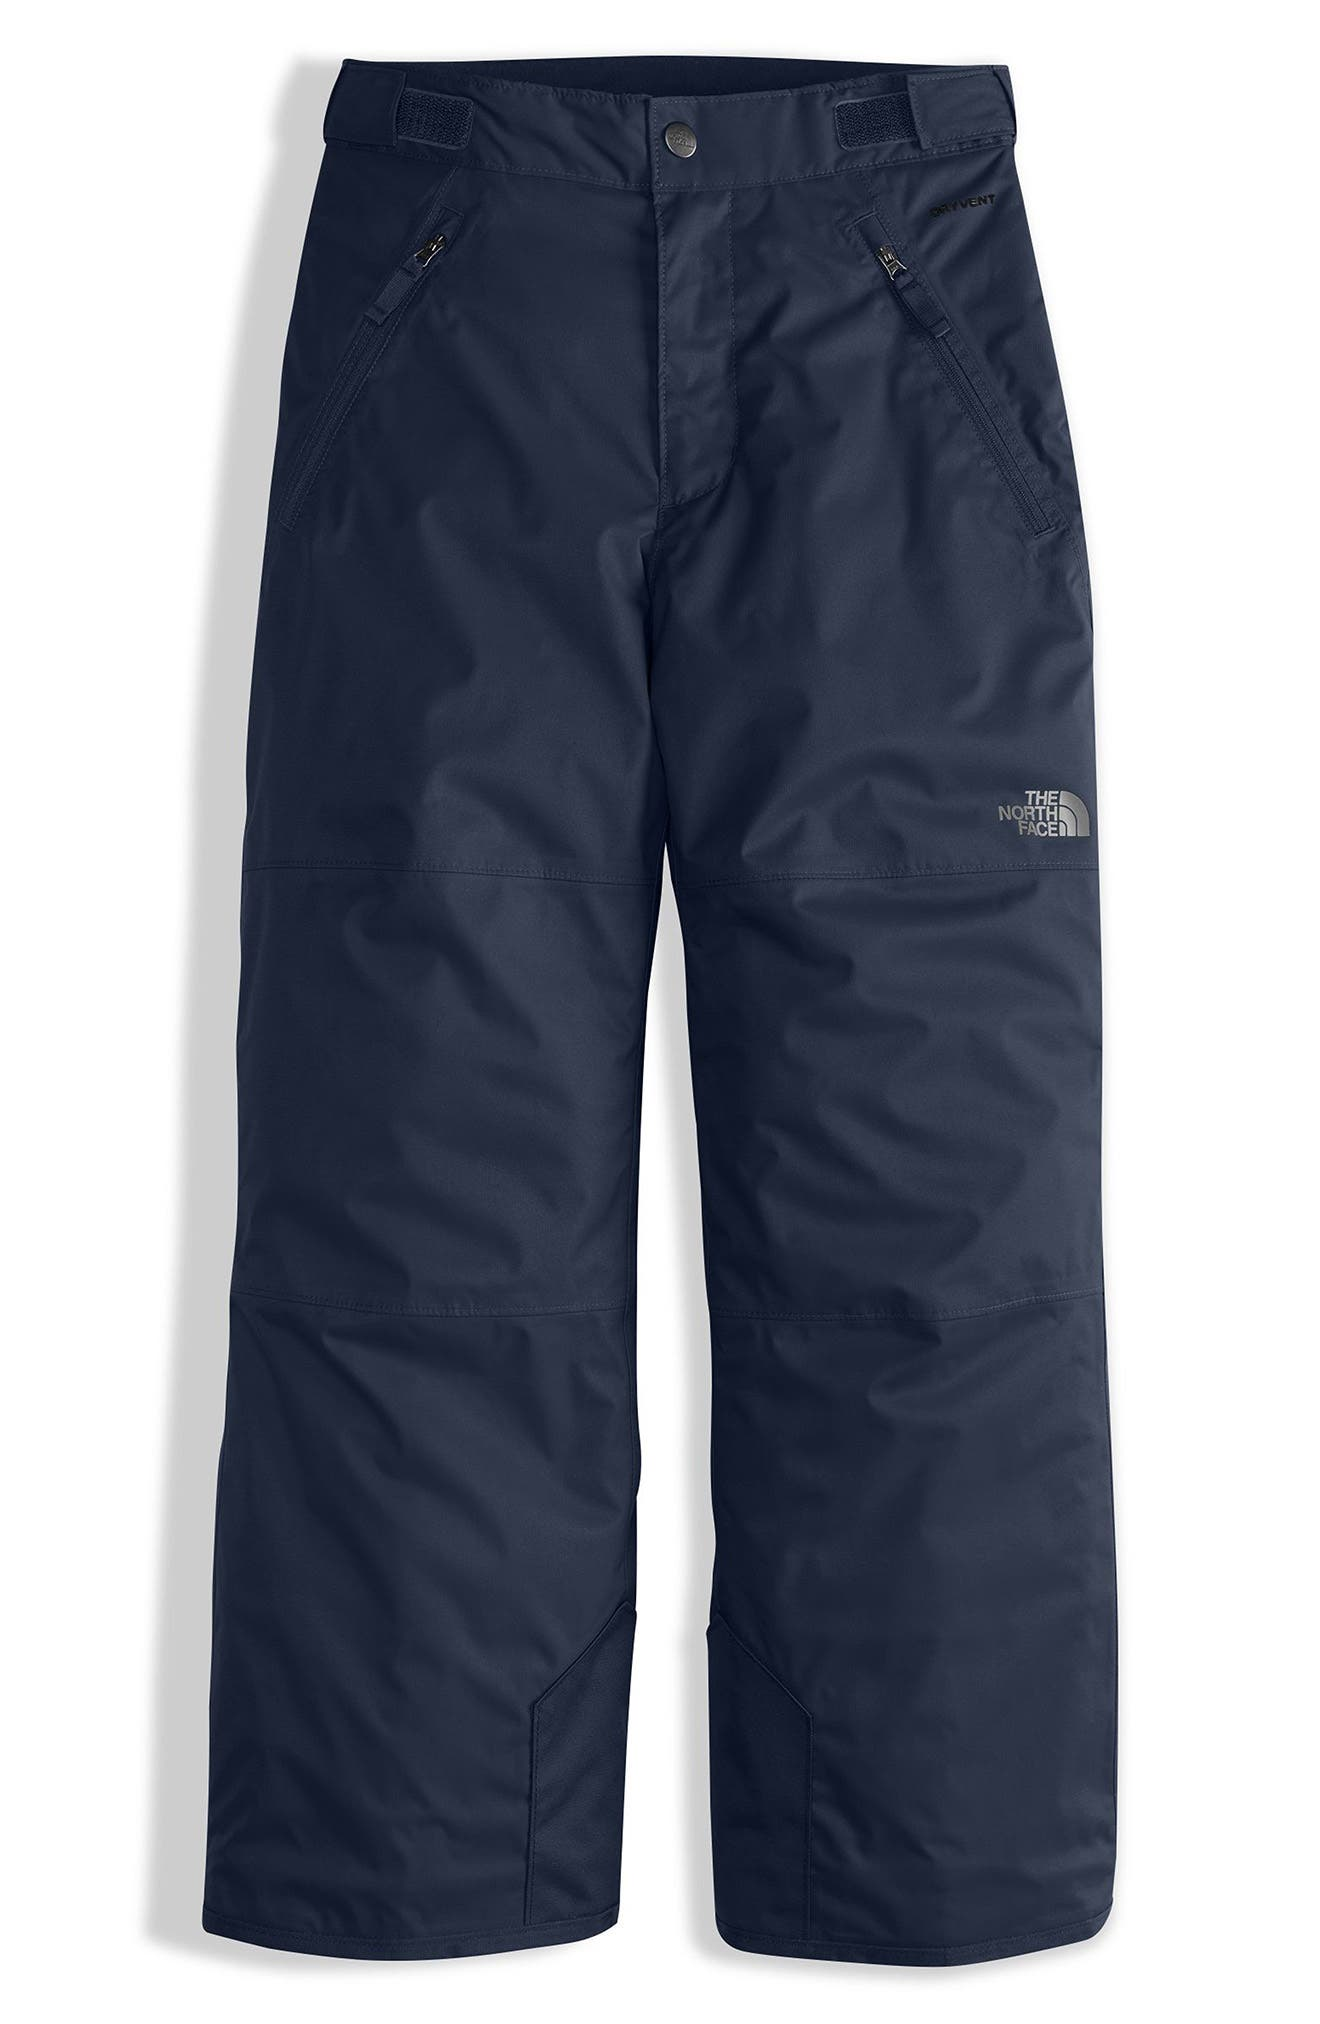 Alternate Image 1 Selected - The North Face Freedom Waterproof Insulated Pants (Big Boys)